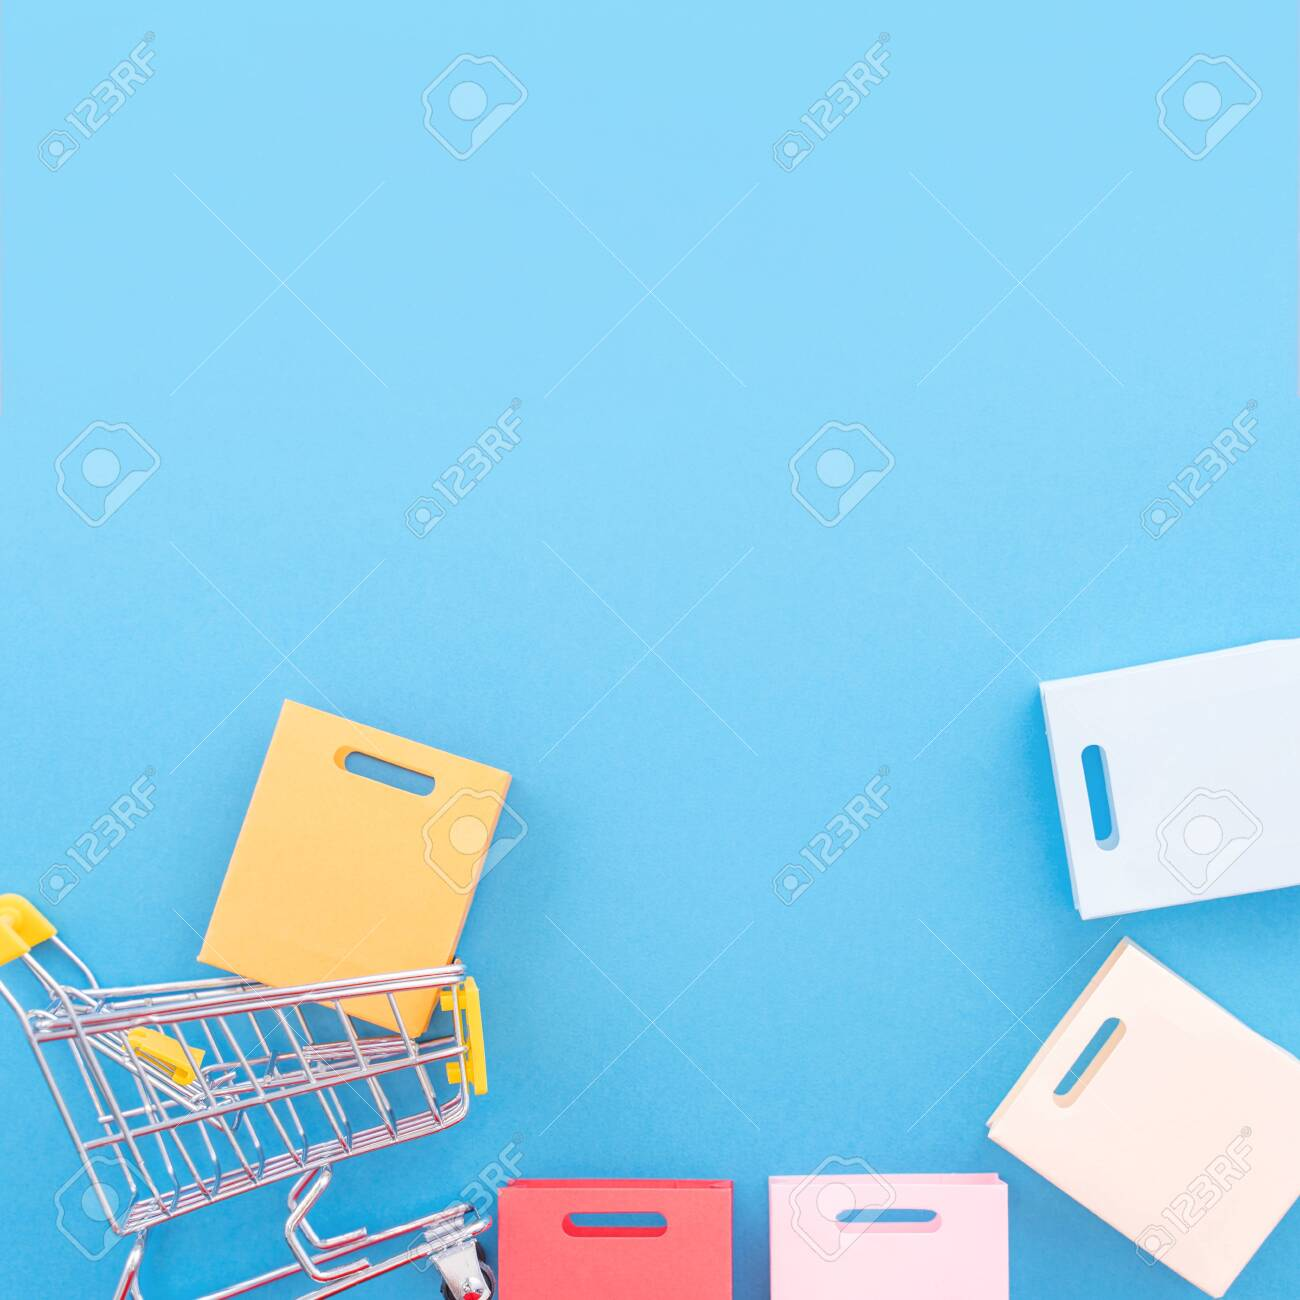 Abstract design element, annual sale, shopping season concept, mini yellow cart with colorful paper bag on pastel blue background, top view, flat lay - 131009060